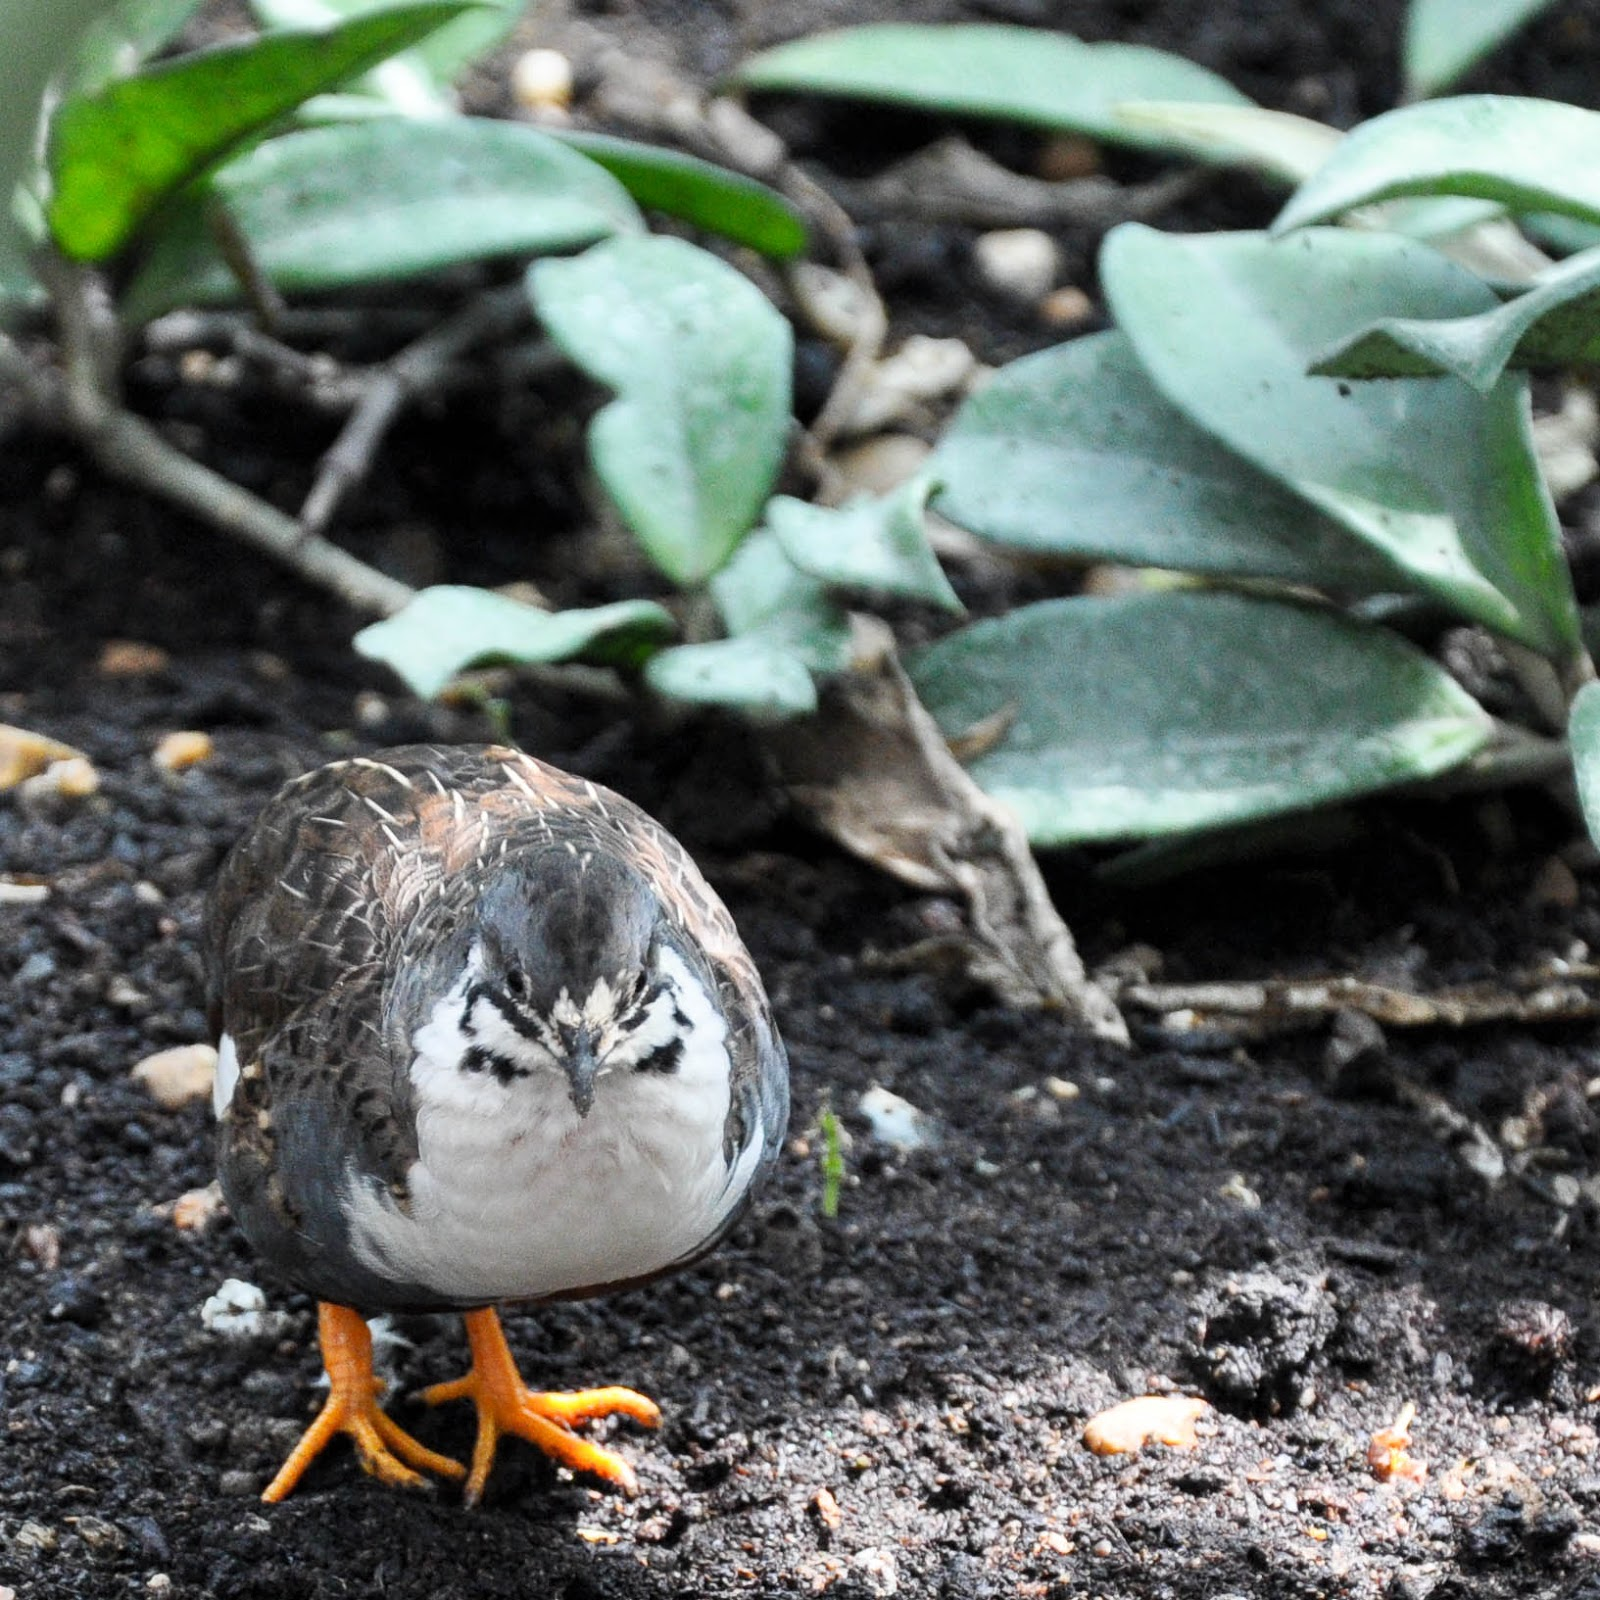 A tiny quail, Tropical Butterfly House, The Butterfly World Project, St. Albans, Herts, UK